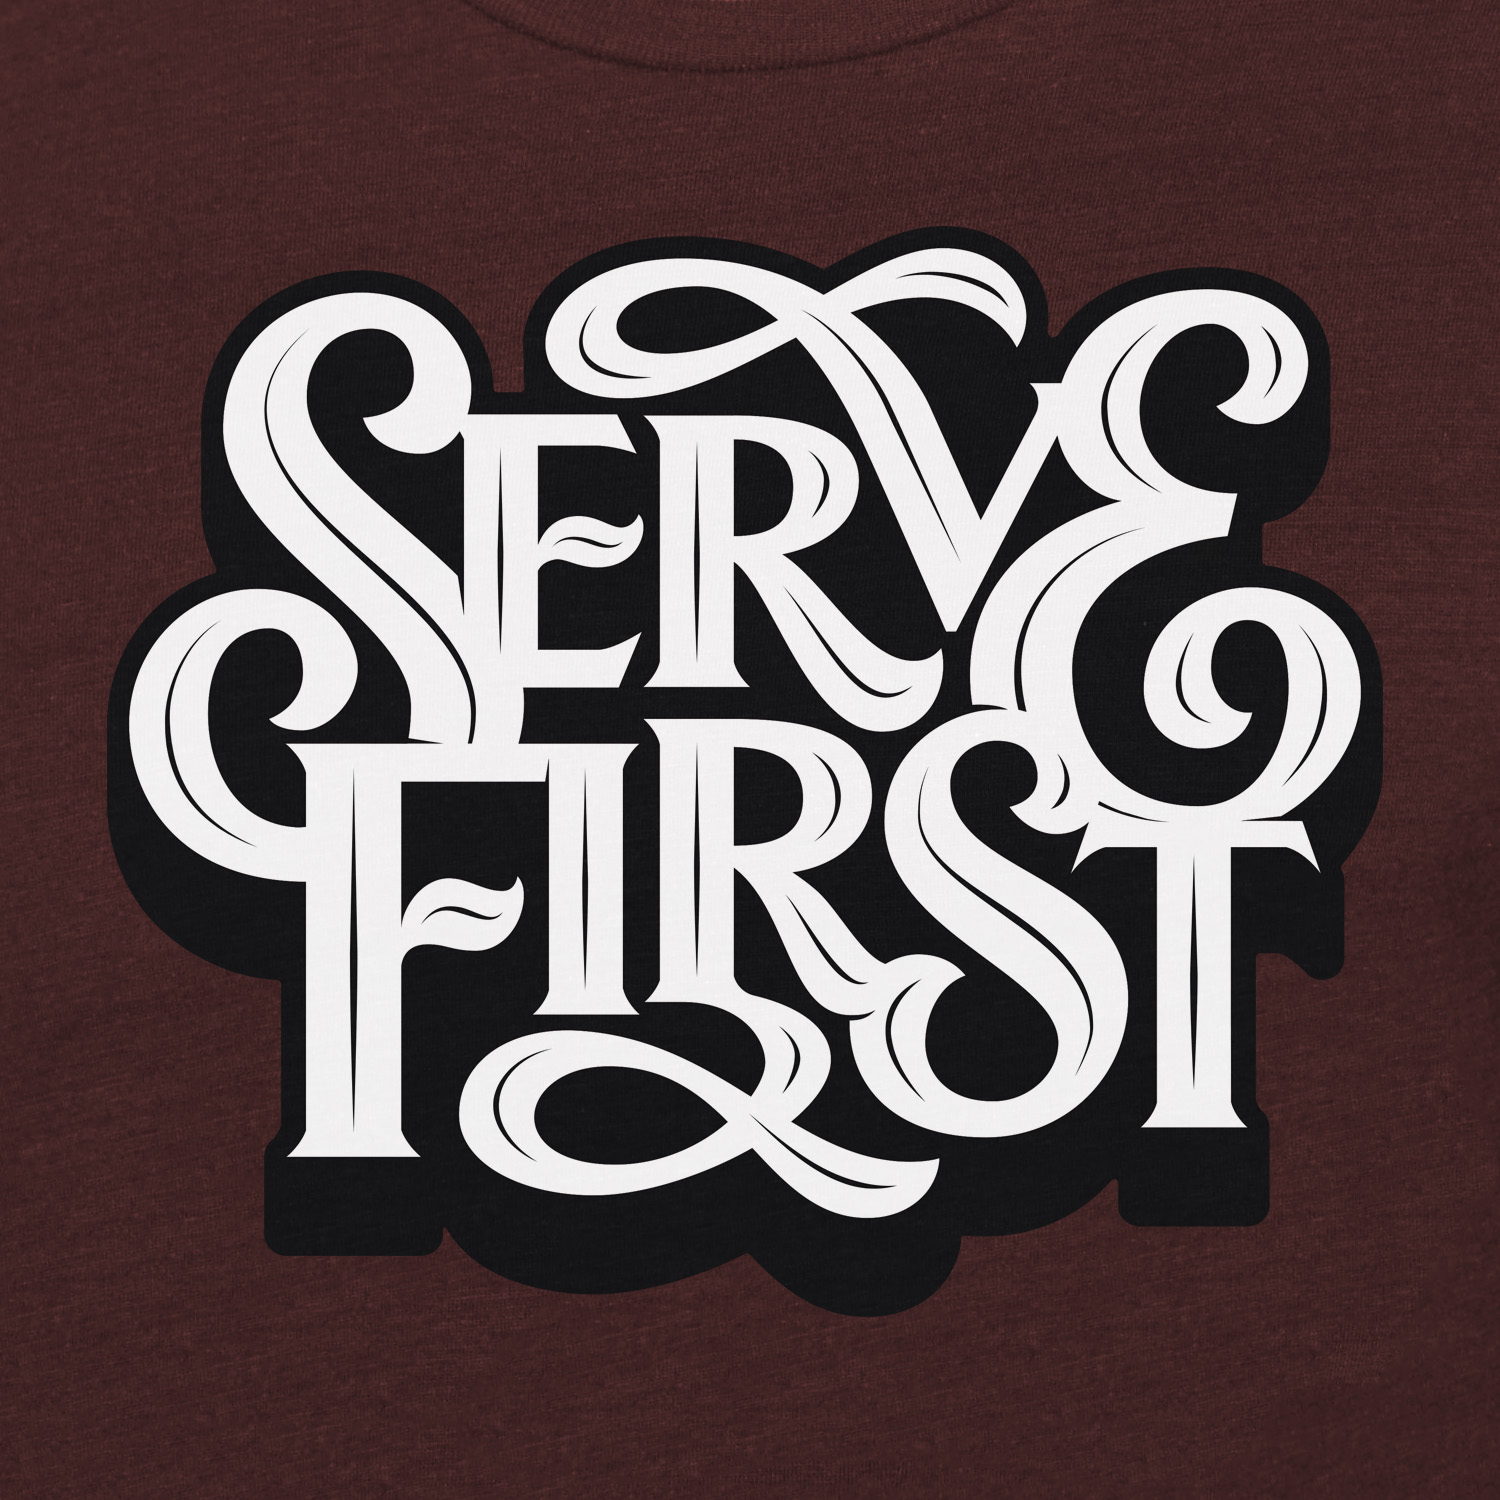 Serve-first-shirt-mockup.jpg